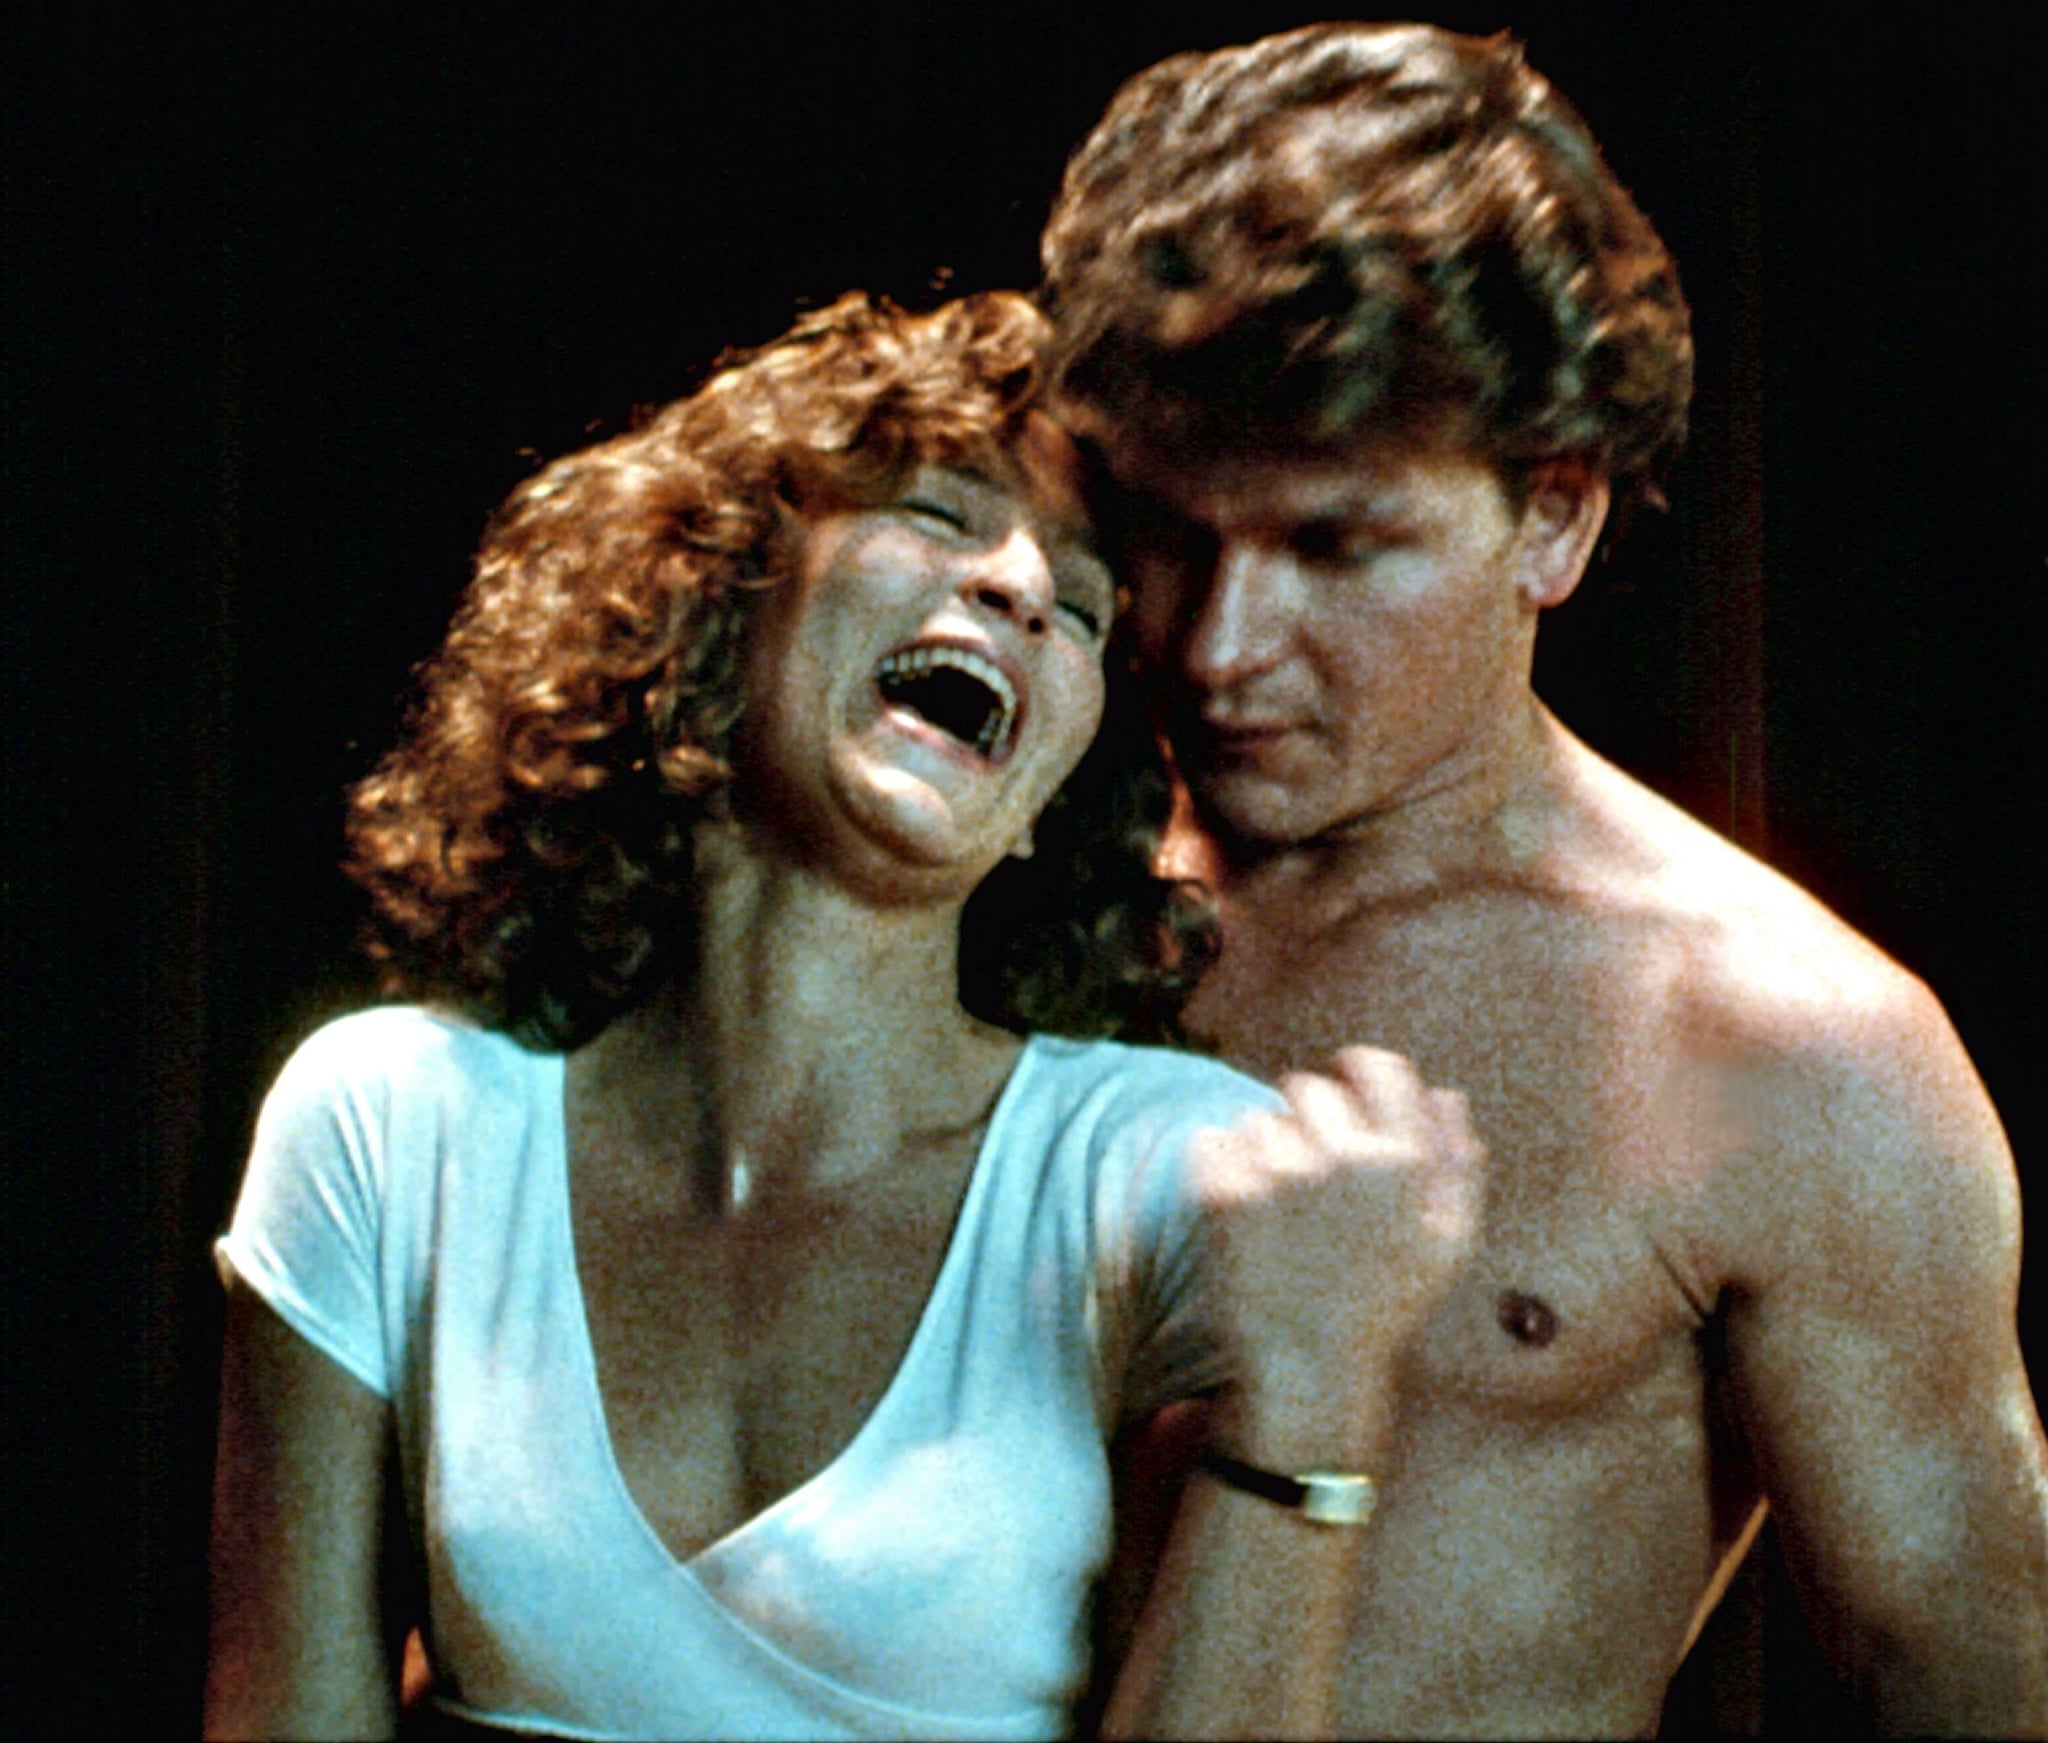 Patrick Swayze, Dirty Dancing